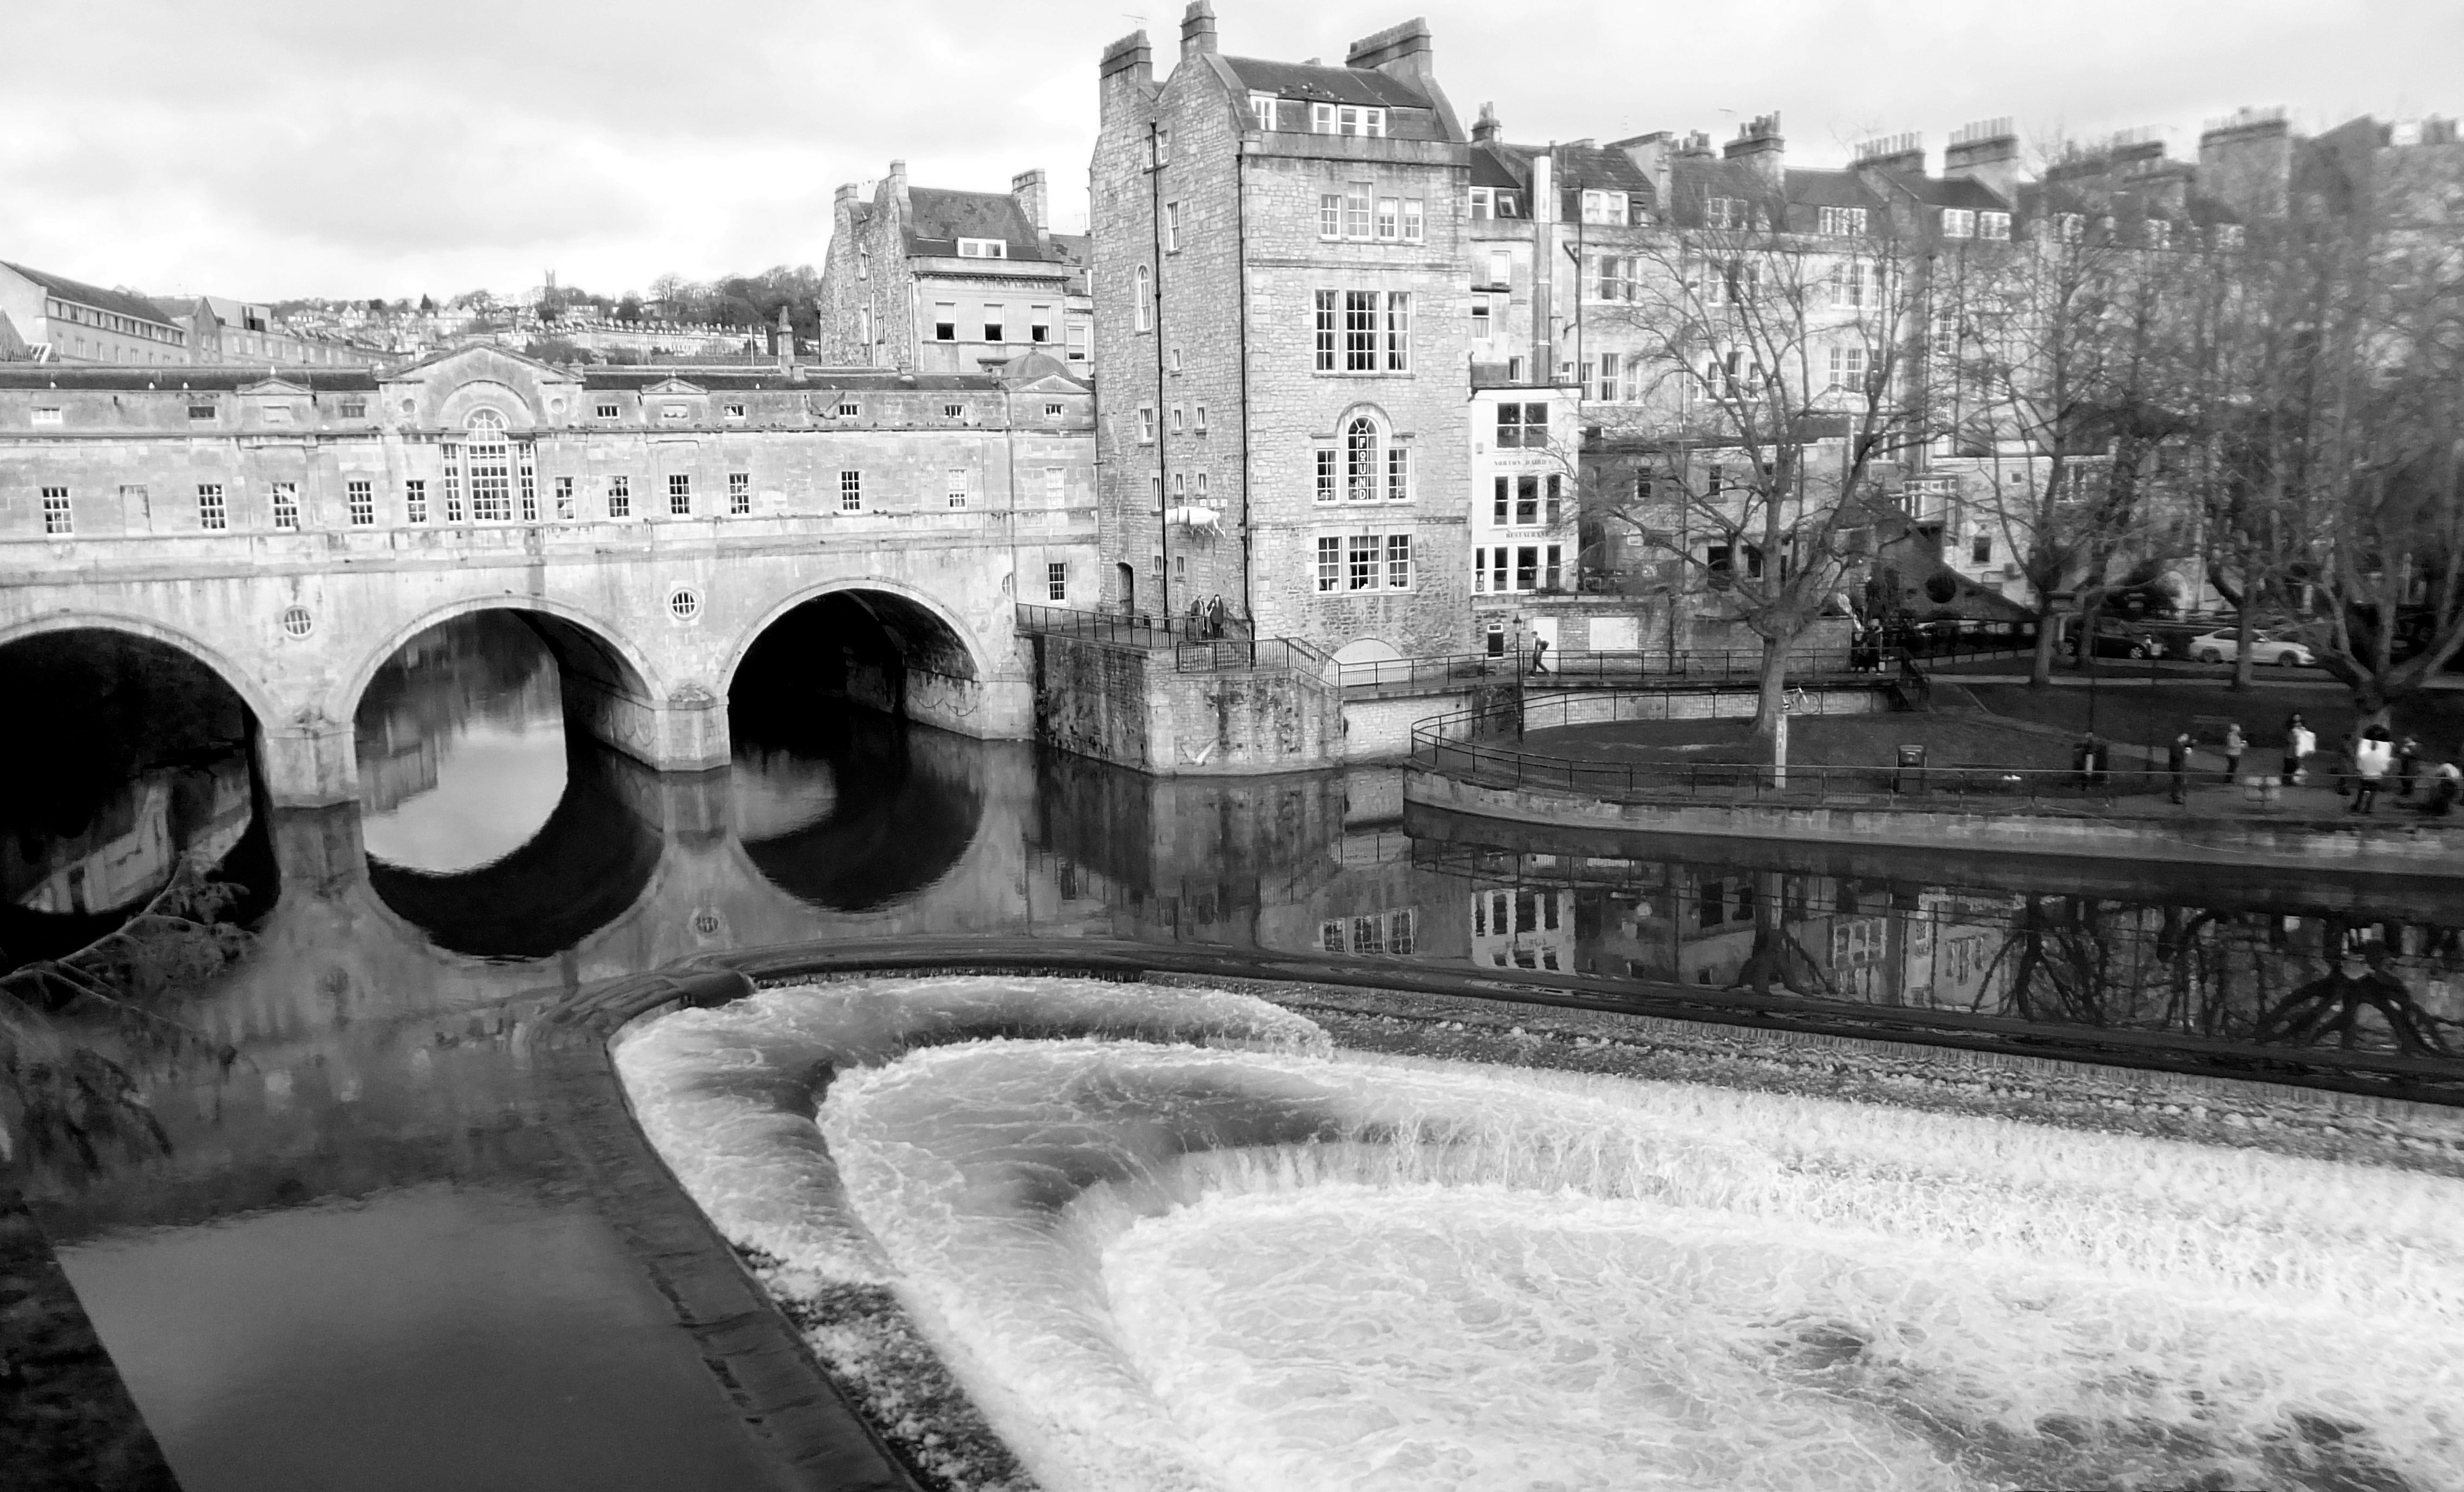 BATH by June Cryer